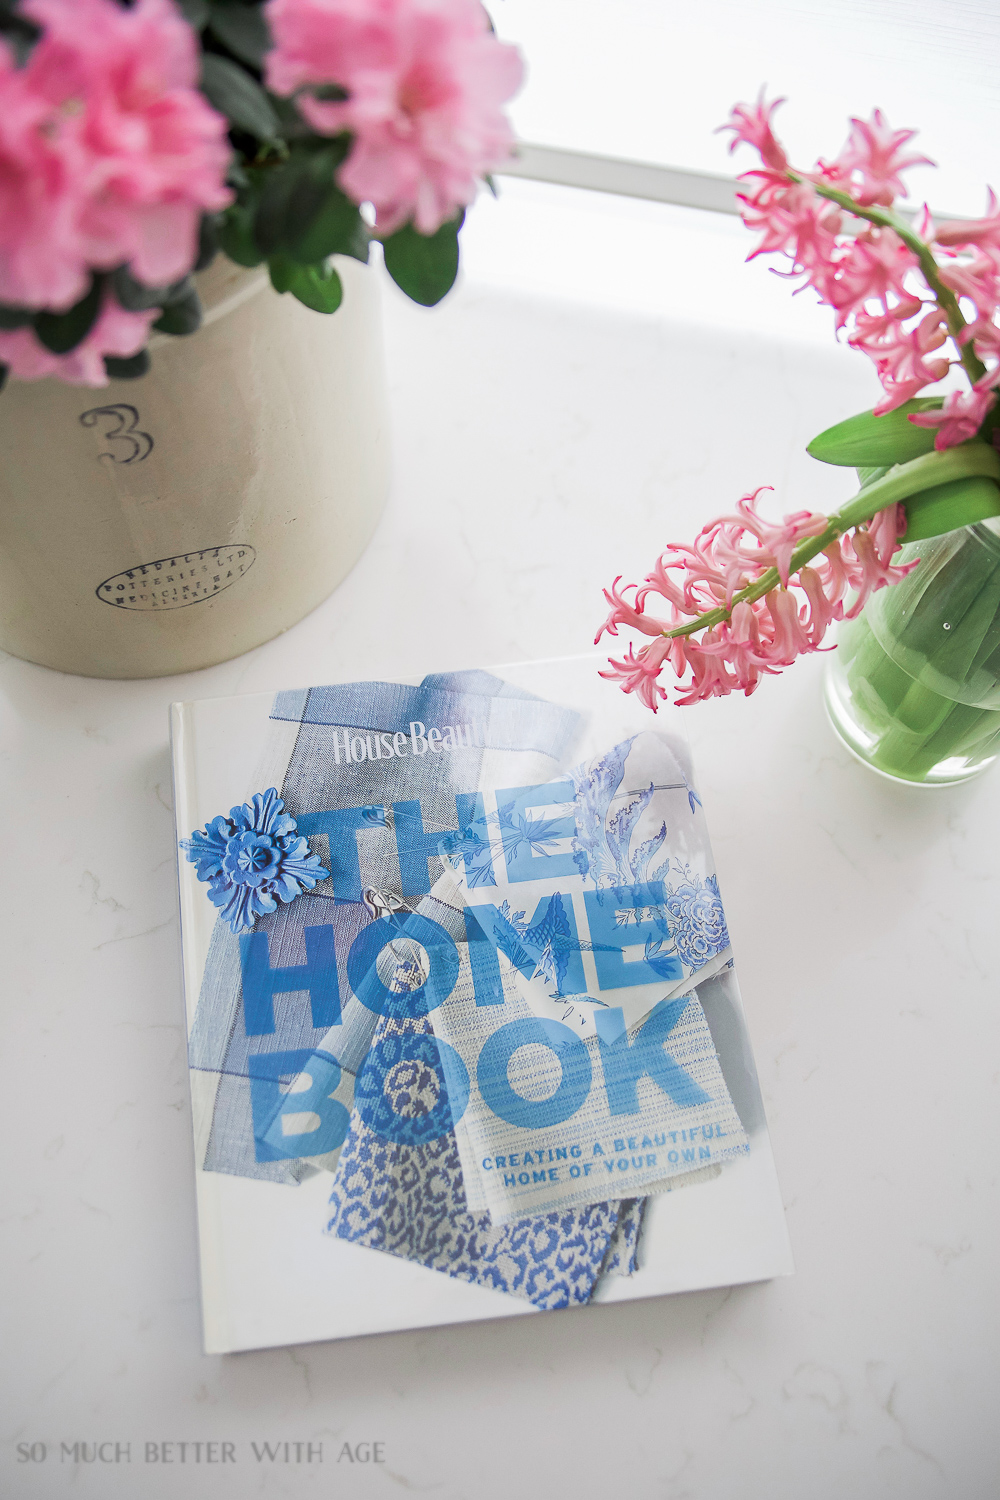 House Beautiful - The Home Book (What Motivated Me to Start A Blog)